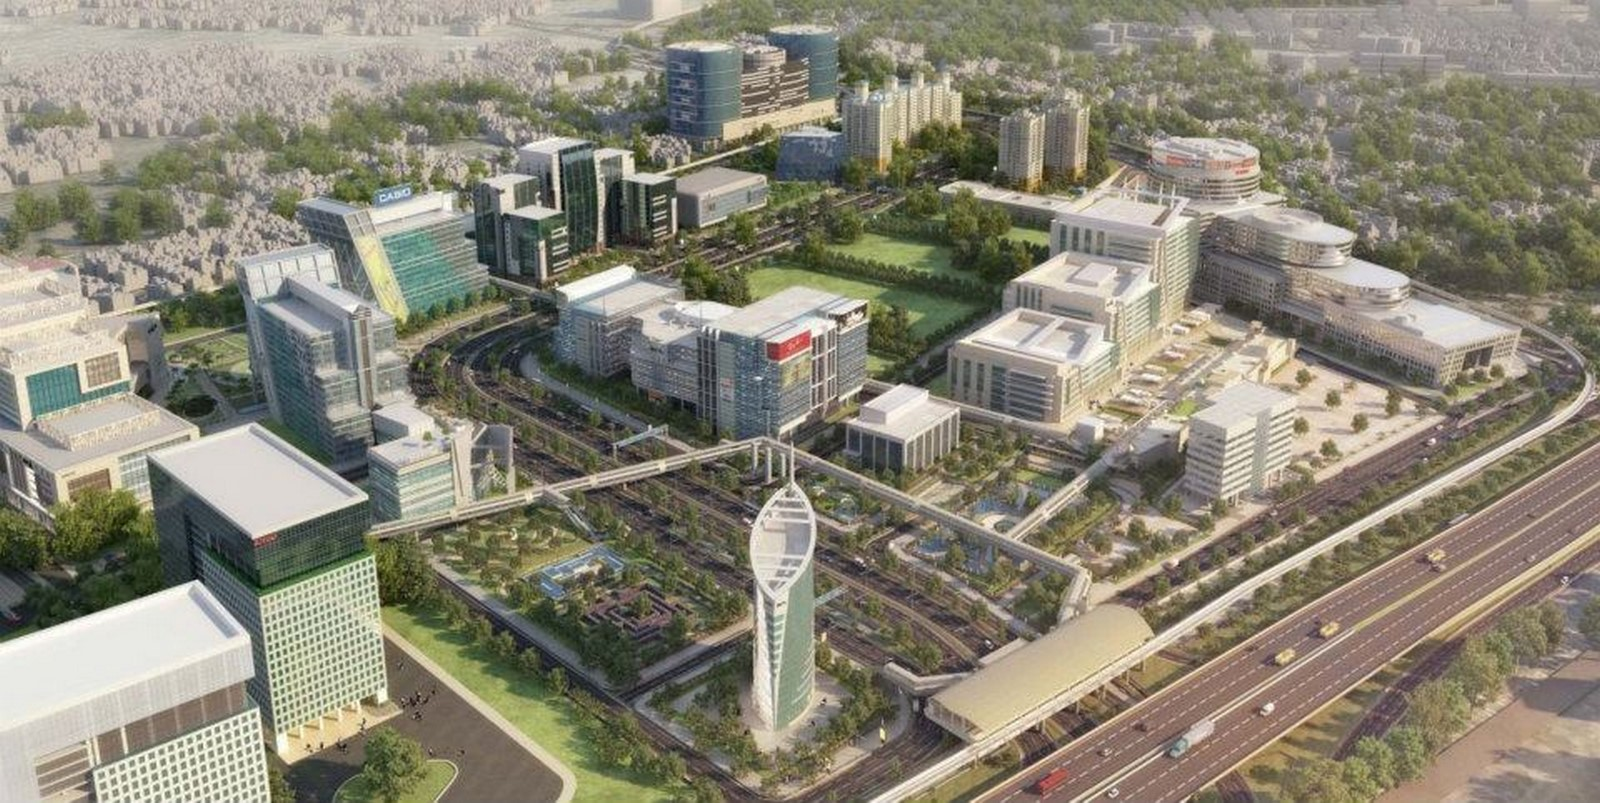 DLF Cyber City, Chennai by Hafeez Contractor: New Generation Offices Sheet4